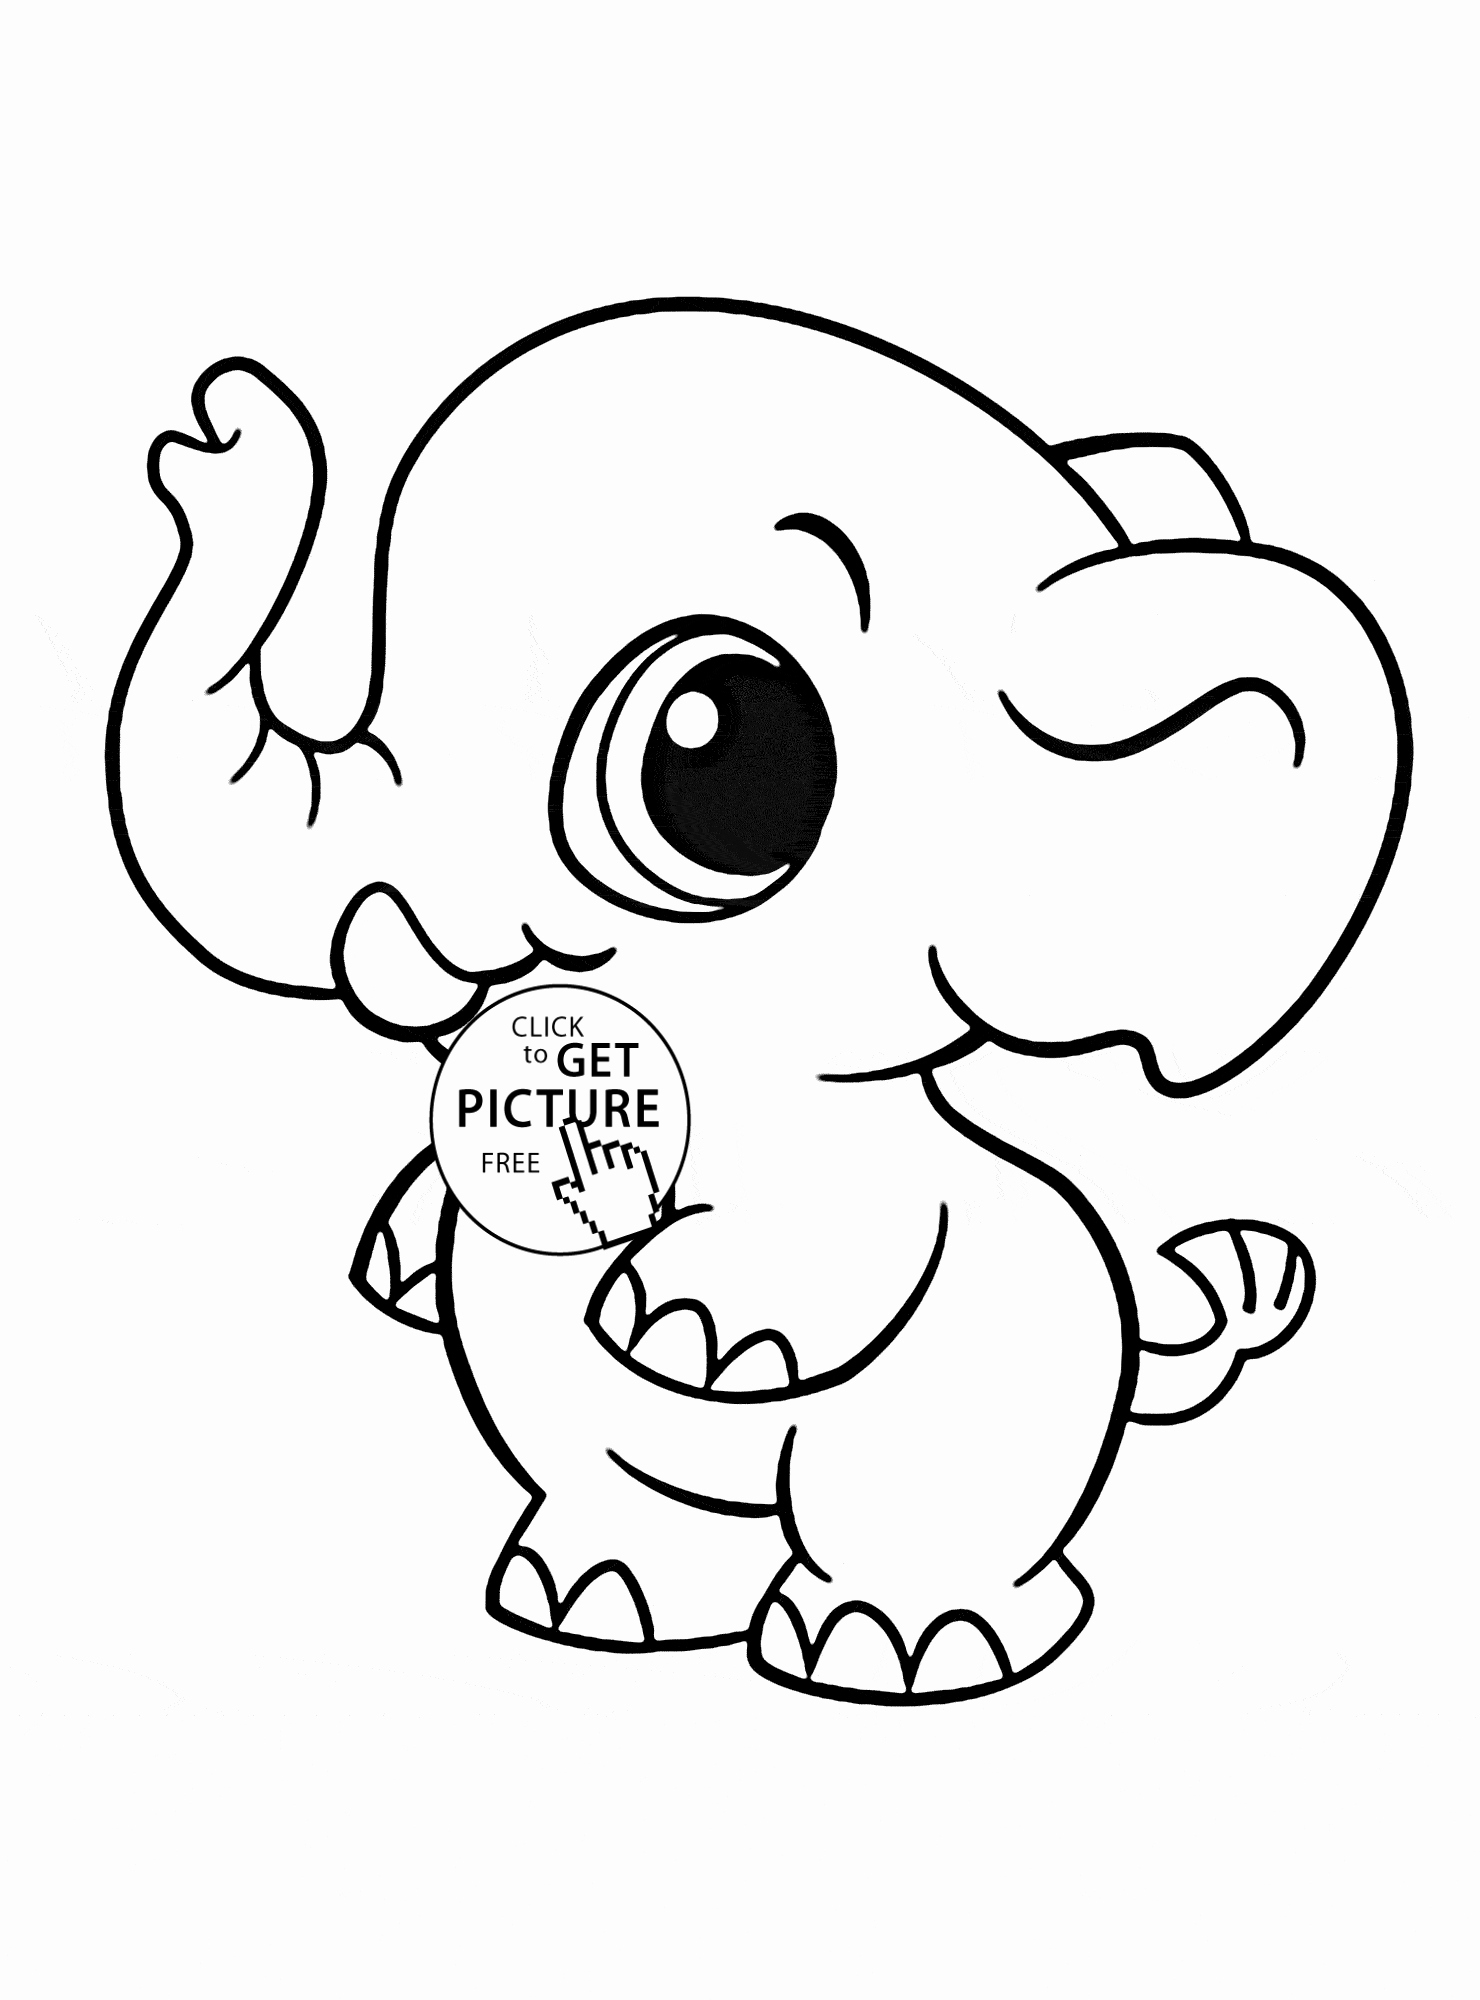 coloring pages for kida Download-Coloring Pages that are Printable Elegant Drawing Printables 0d 2-r